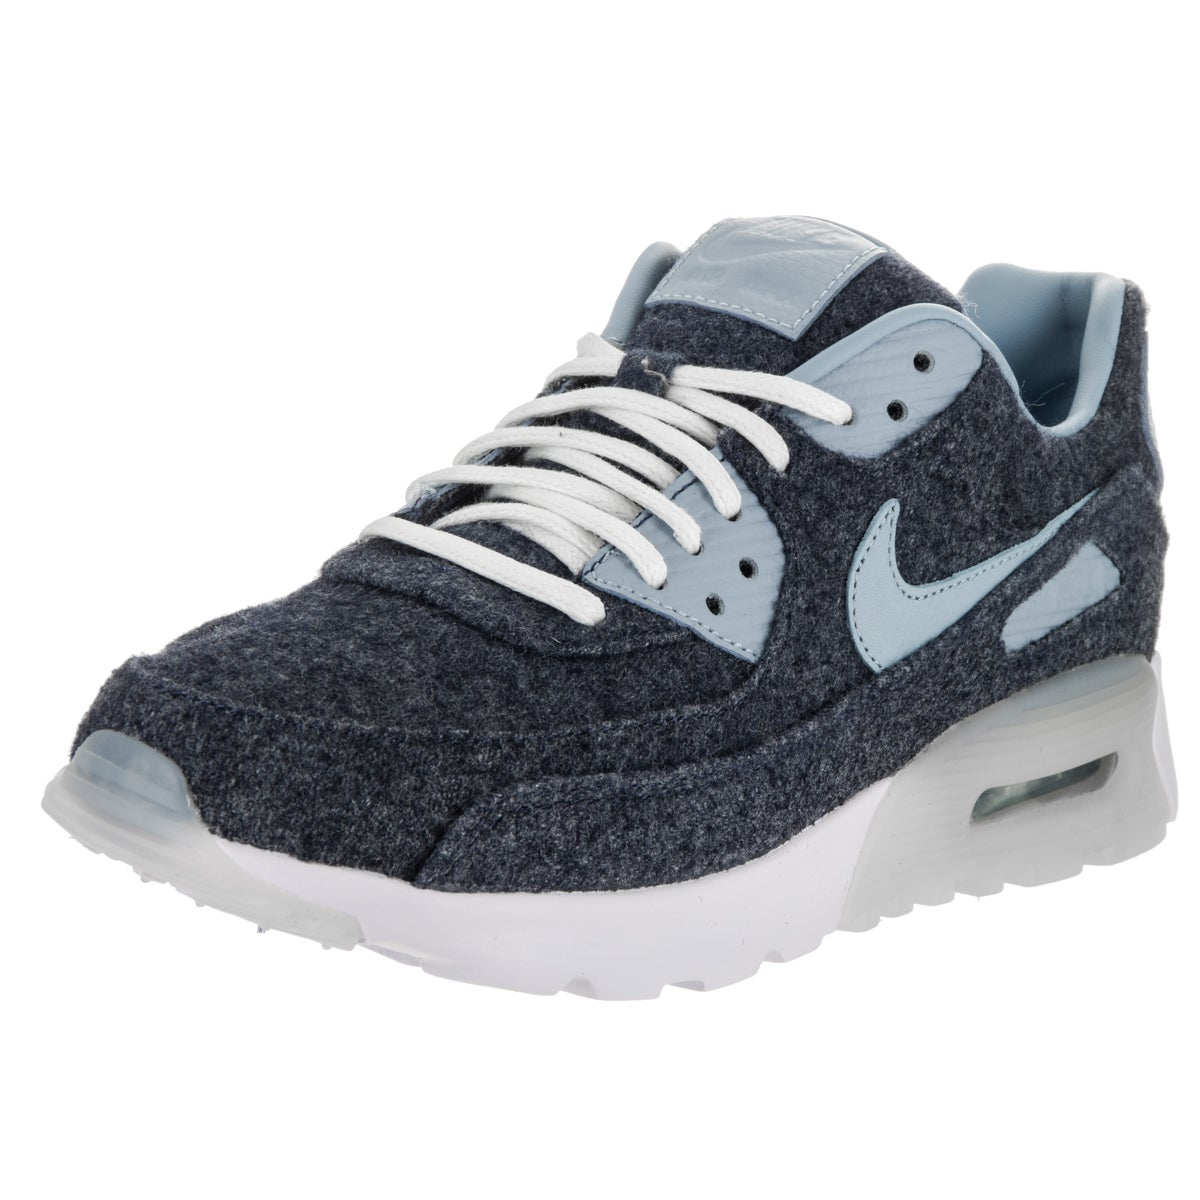 Nike Women's Air Max 90 Ultra Blue Wool Premium Running S...